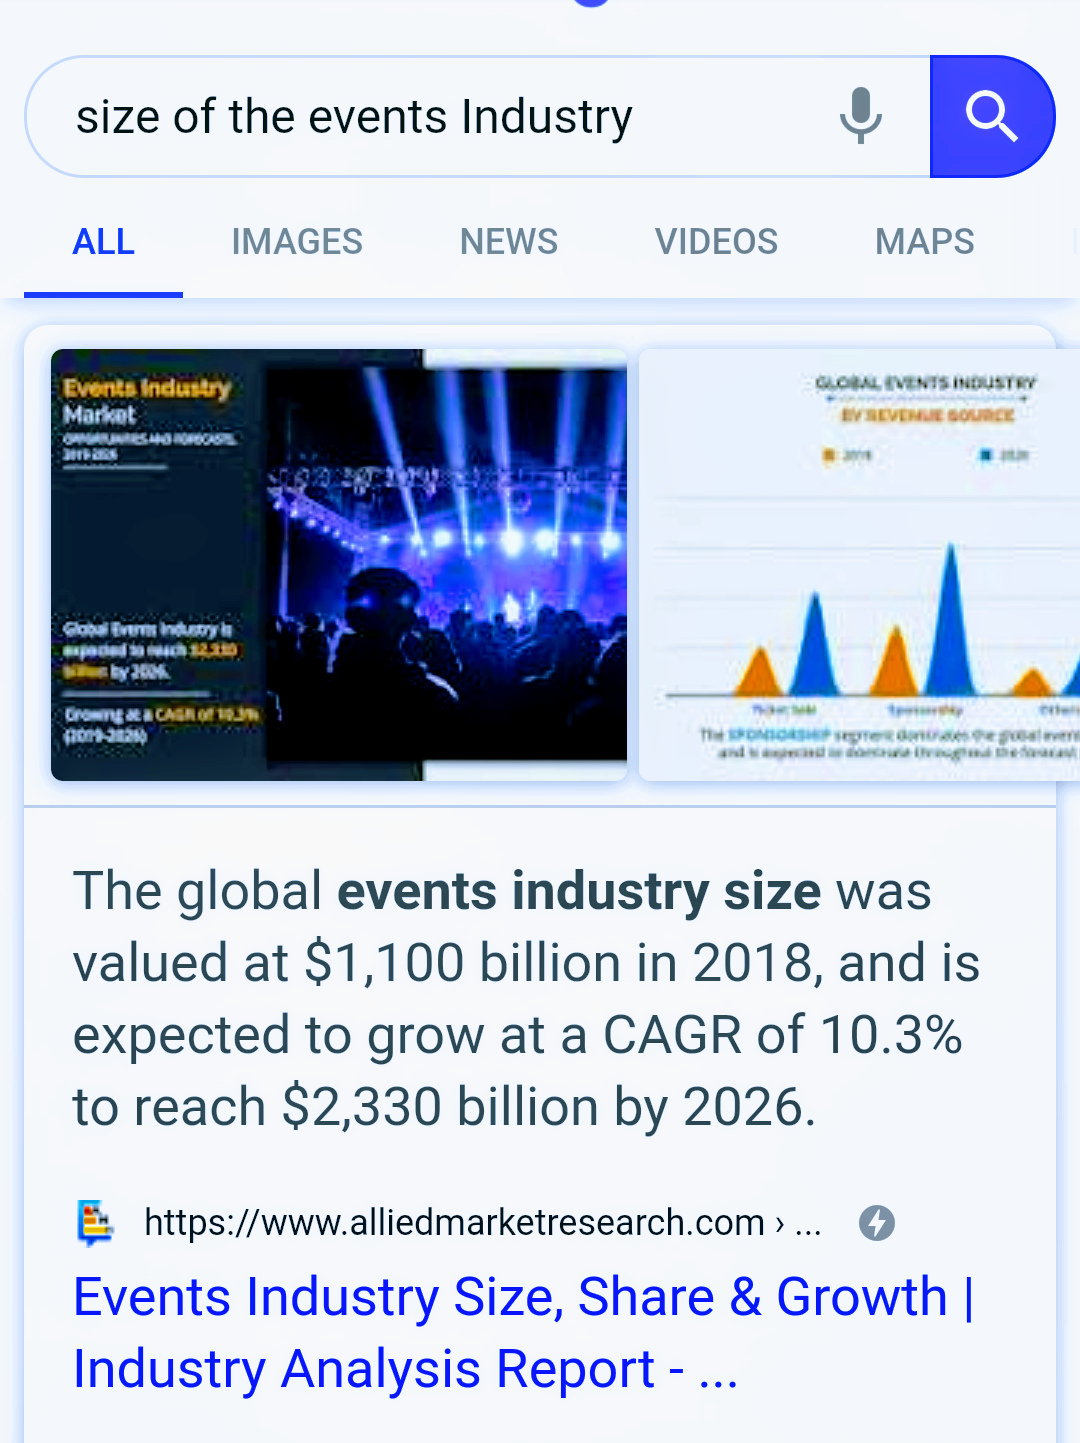 Size of the events industry